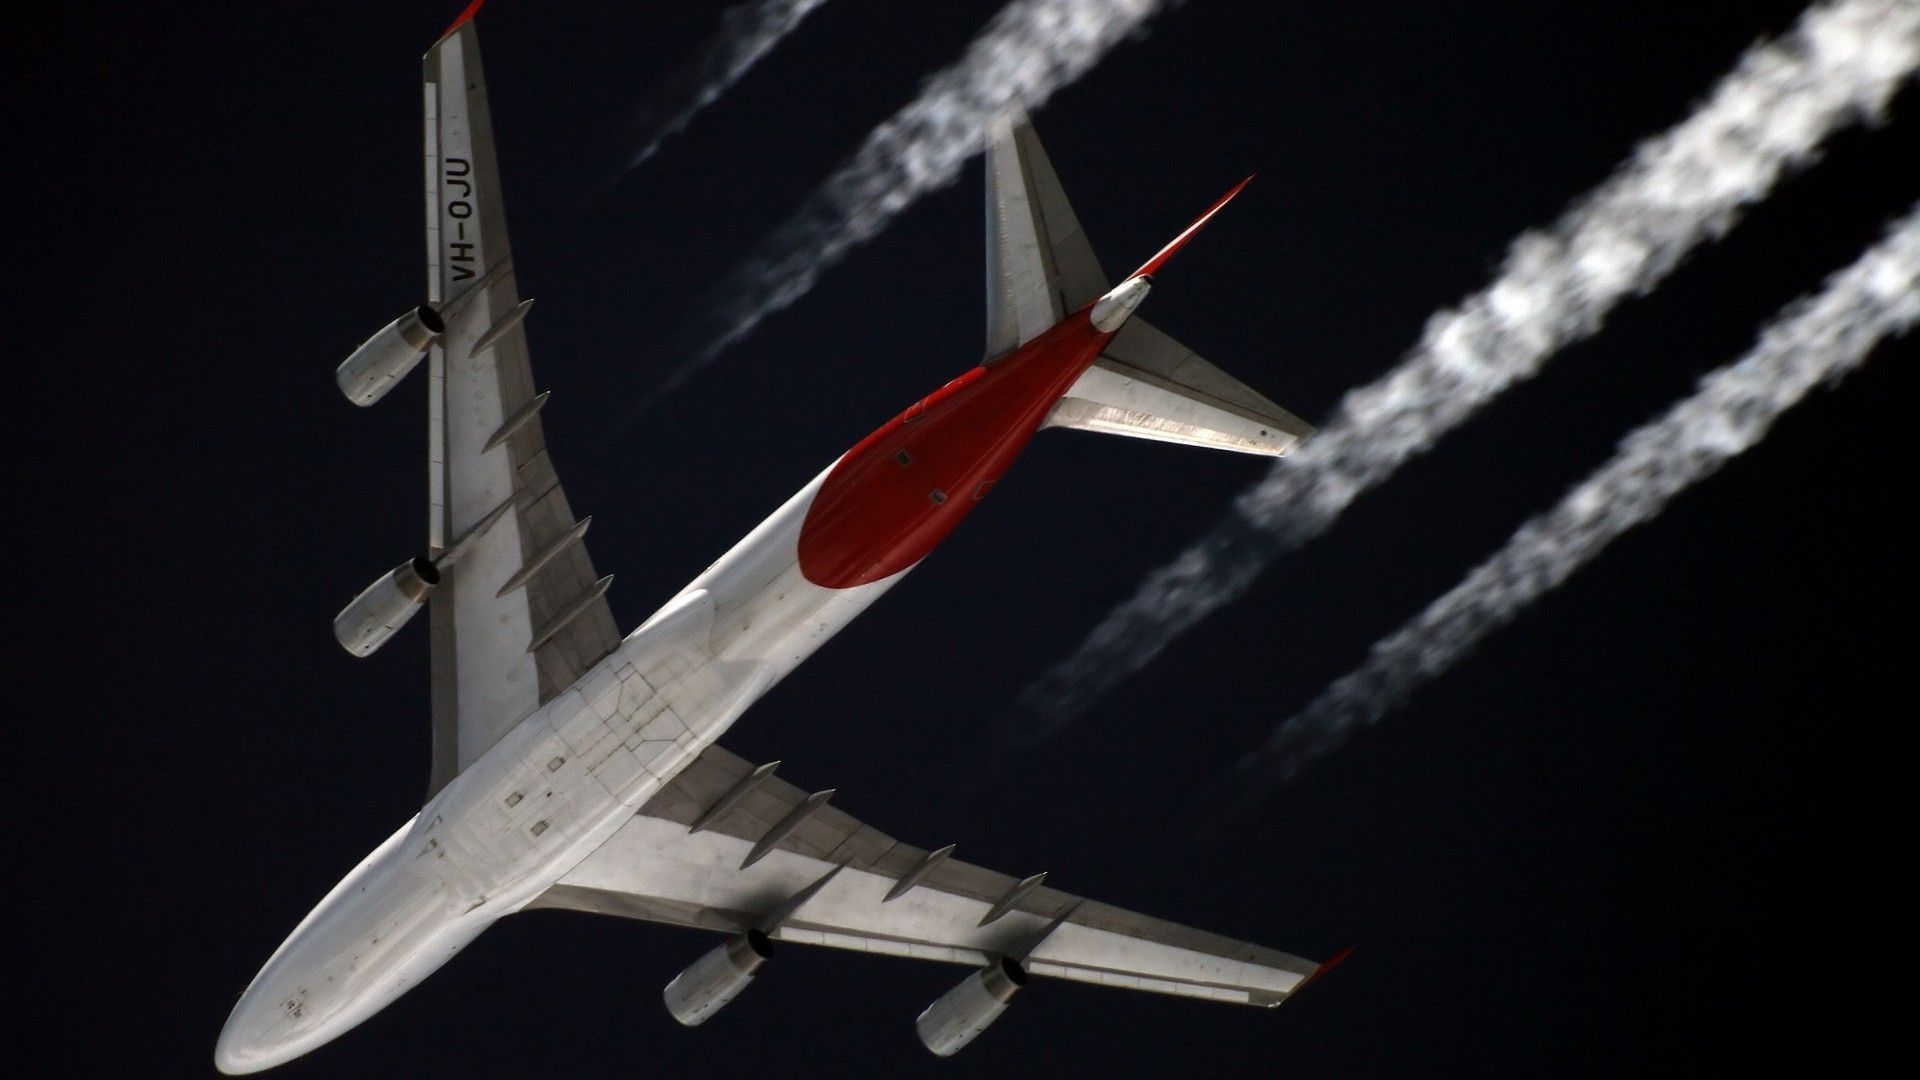 Boeing 747 aircraft airliners contrails (1920x1080, aircraft, airliners, contrails)  via www.allwallpaper.in